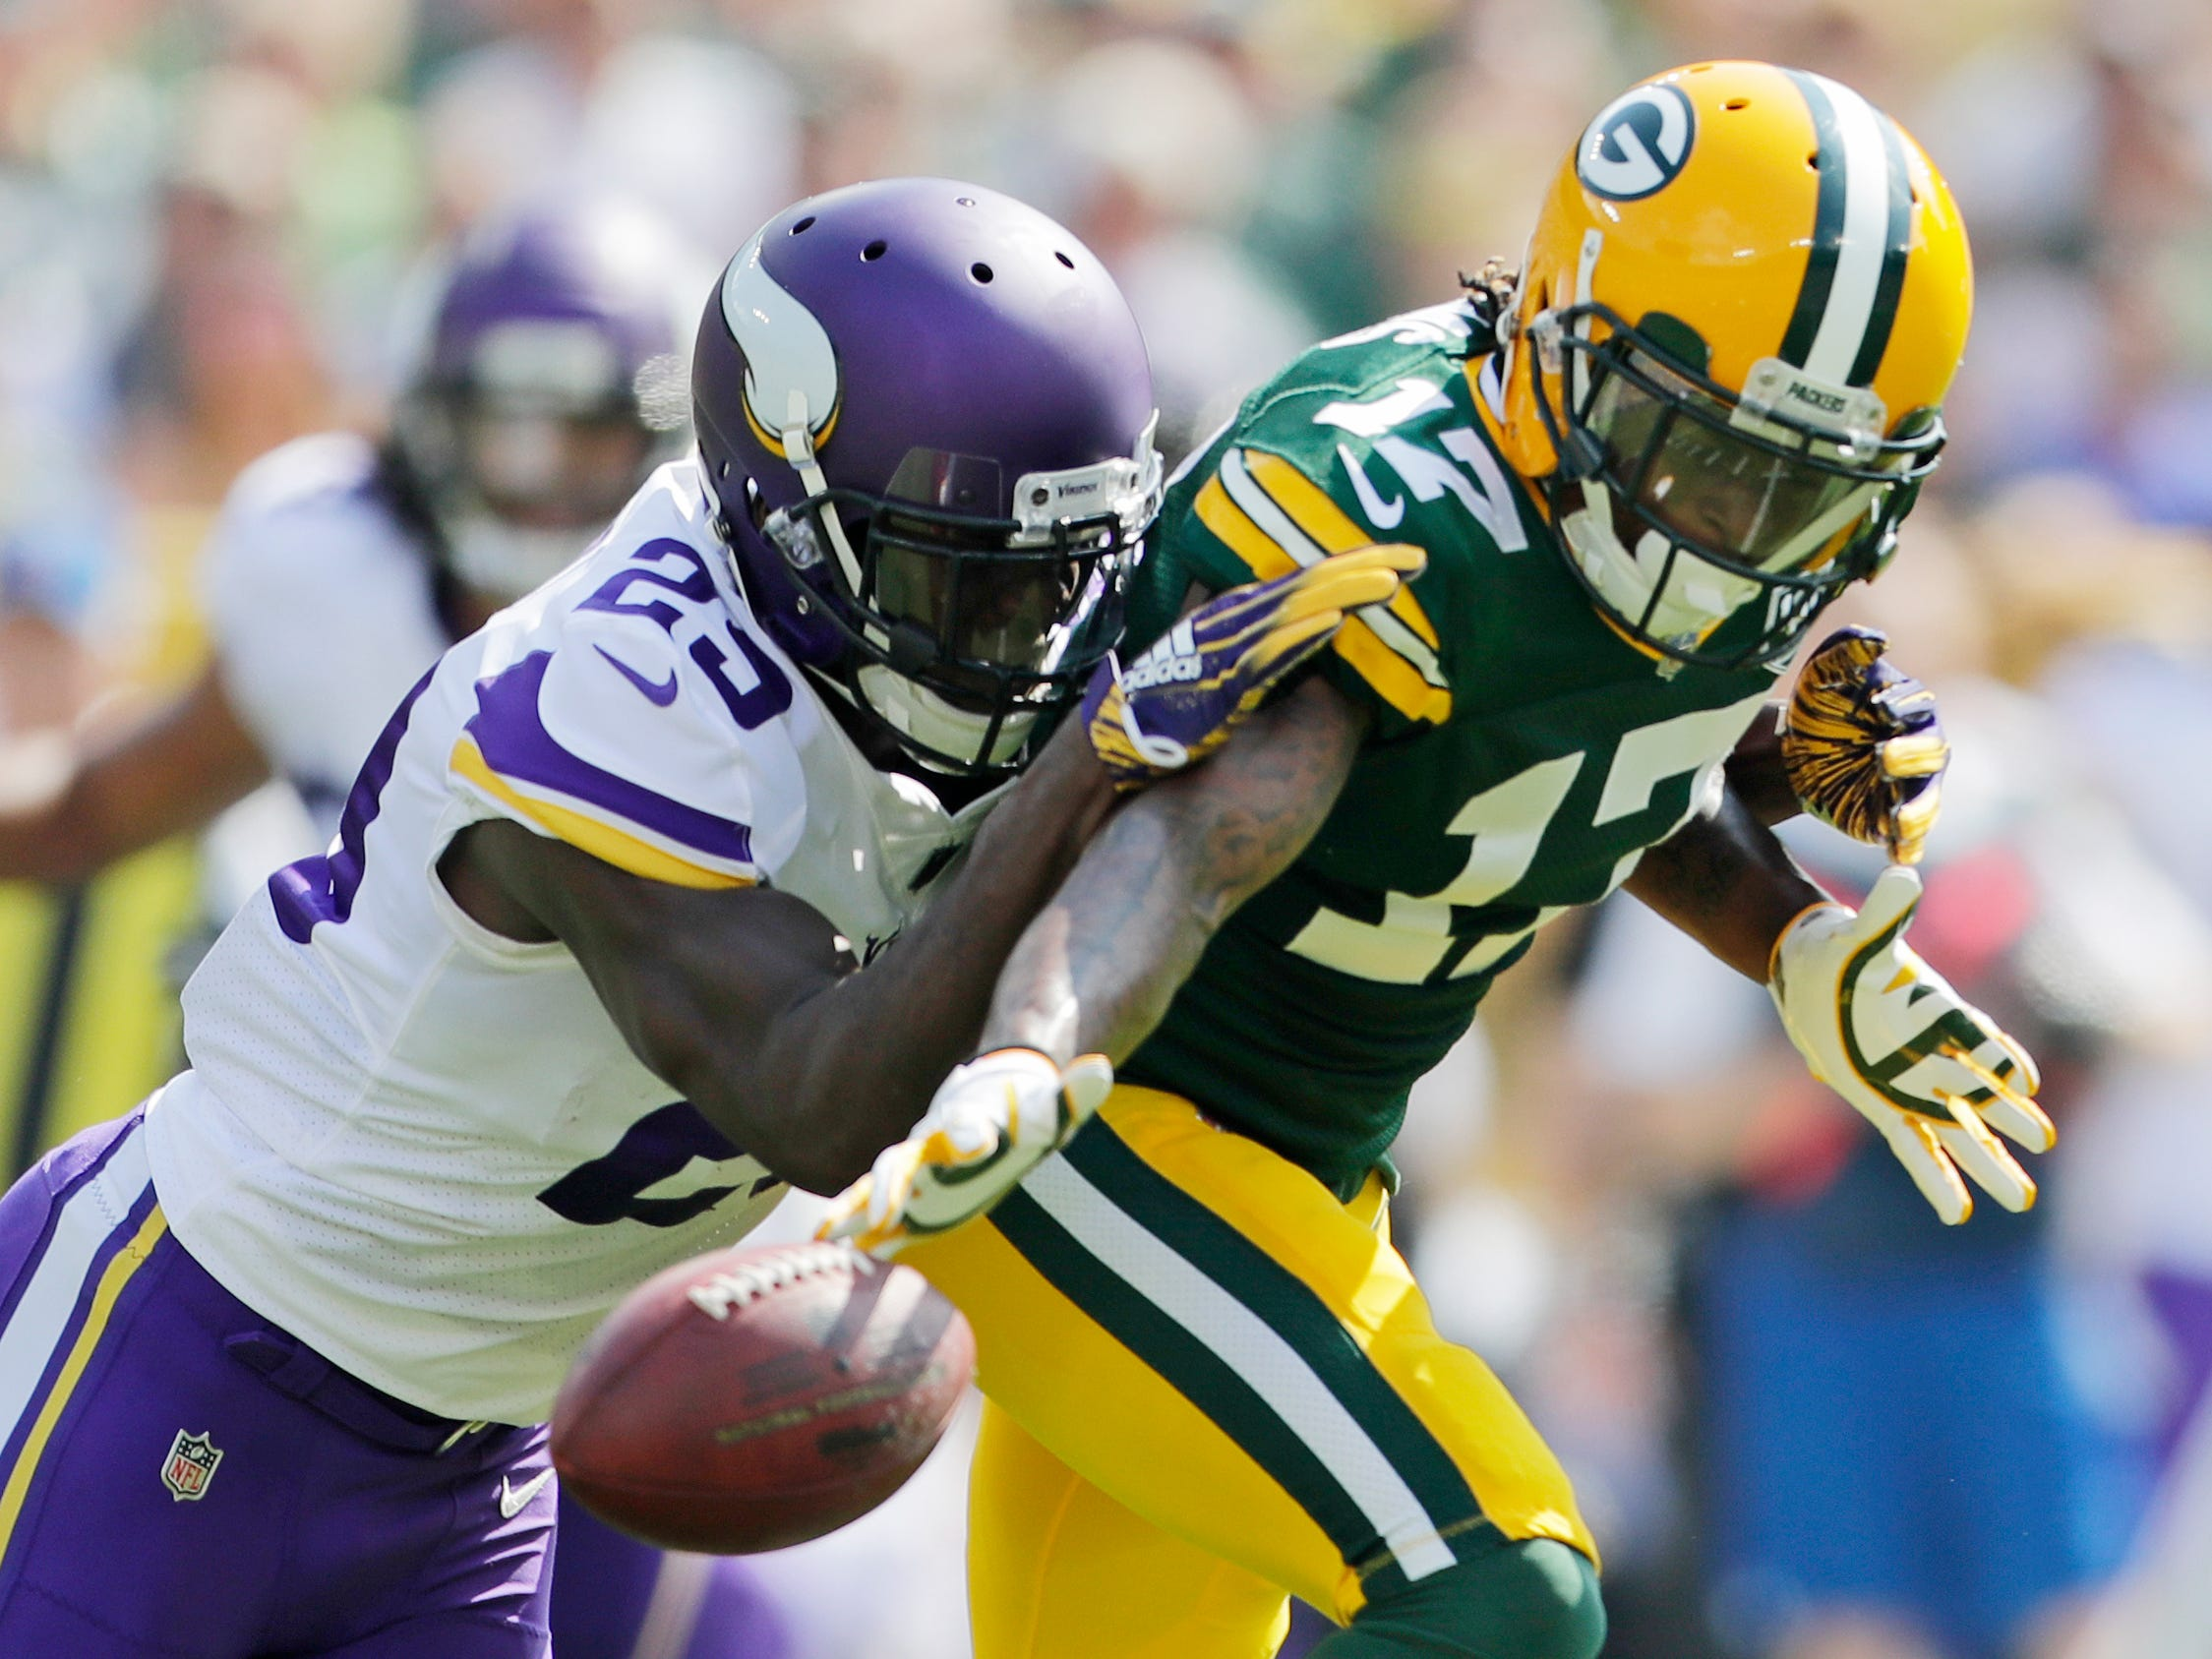 Minnesota Vikings defensive back Xavier Rhodes (29) breaks up a pass intended for Green Bay Packers wide receiver Davante Adams (17) in the first quarter at Lambeau Field on Sunday, September 16, 2018 in Green Bay, Wis.